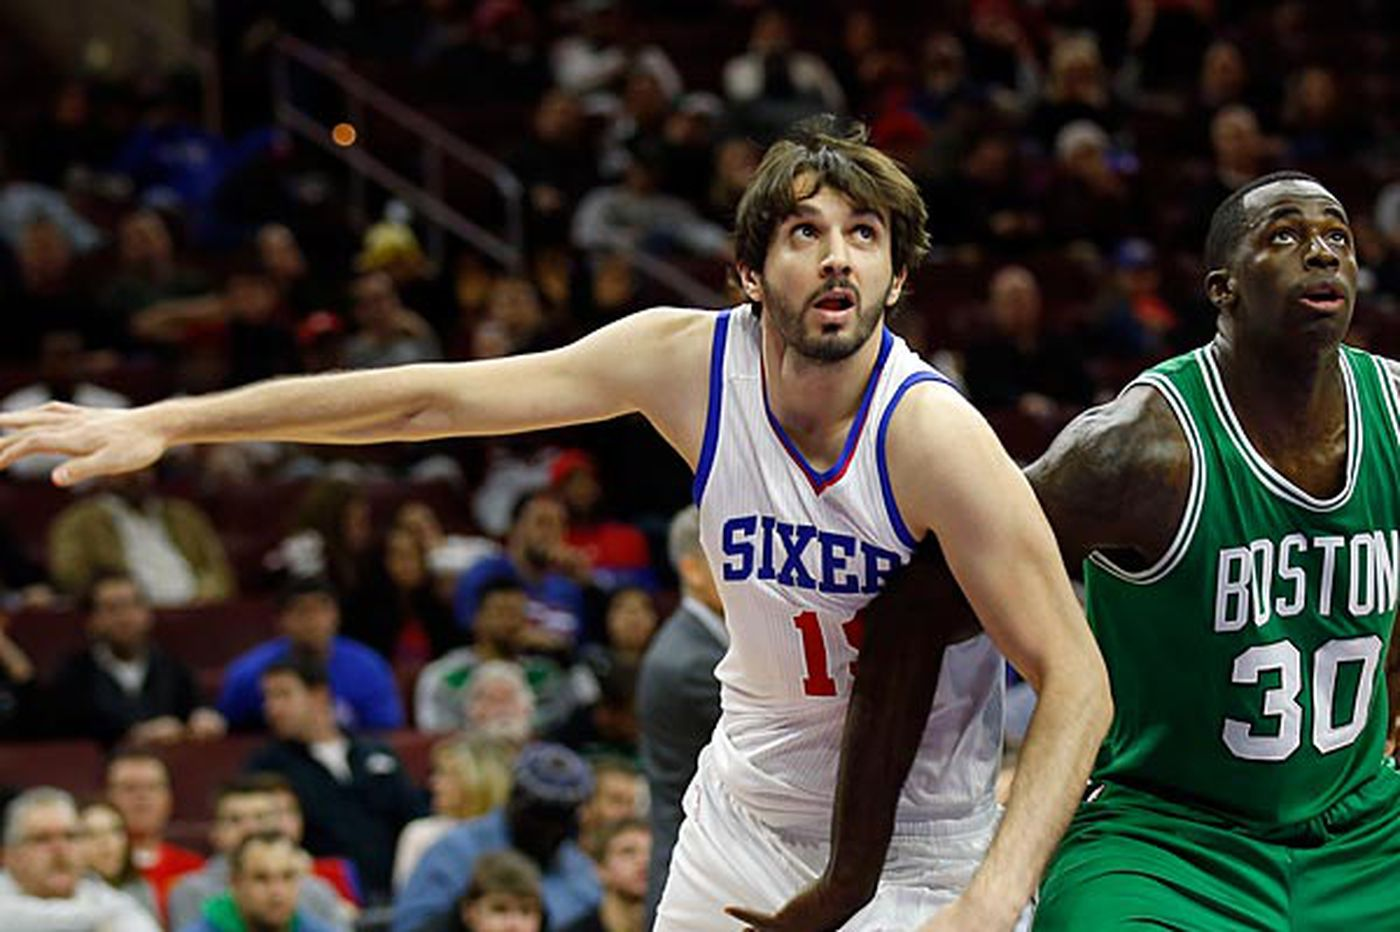 Sixers' Aldemir sidelined by plantar fasciitis